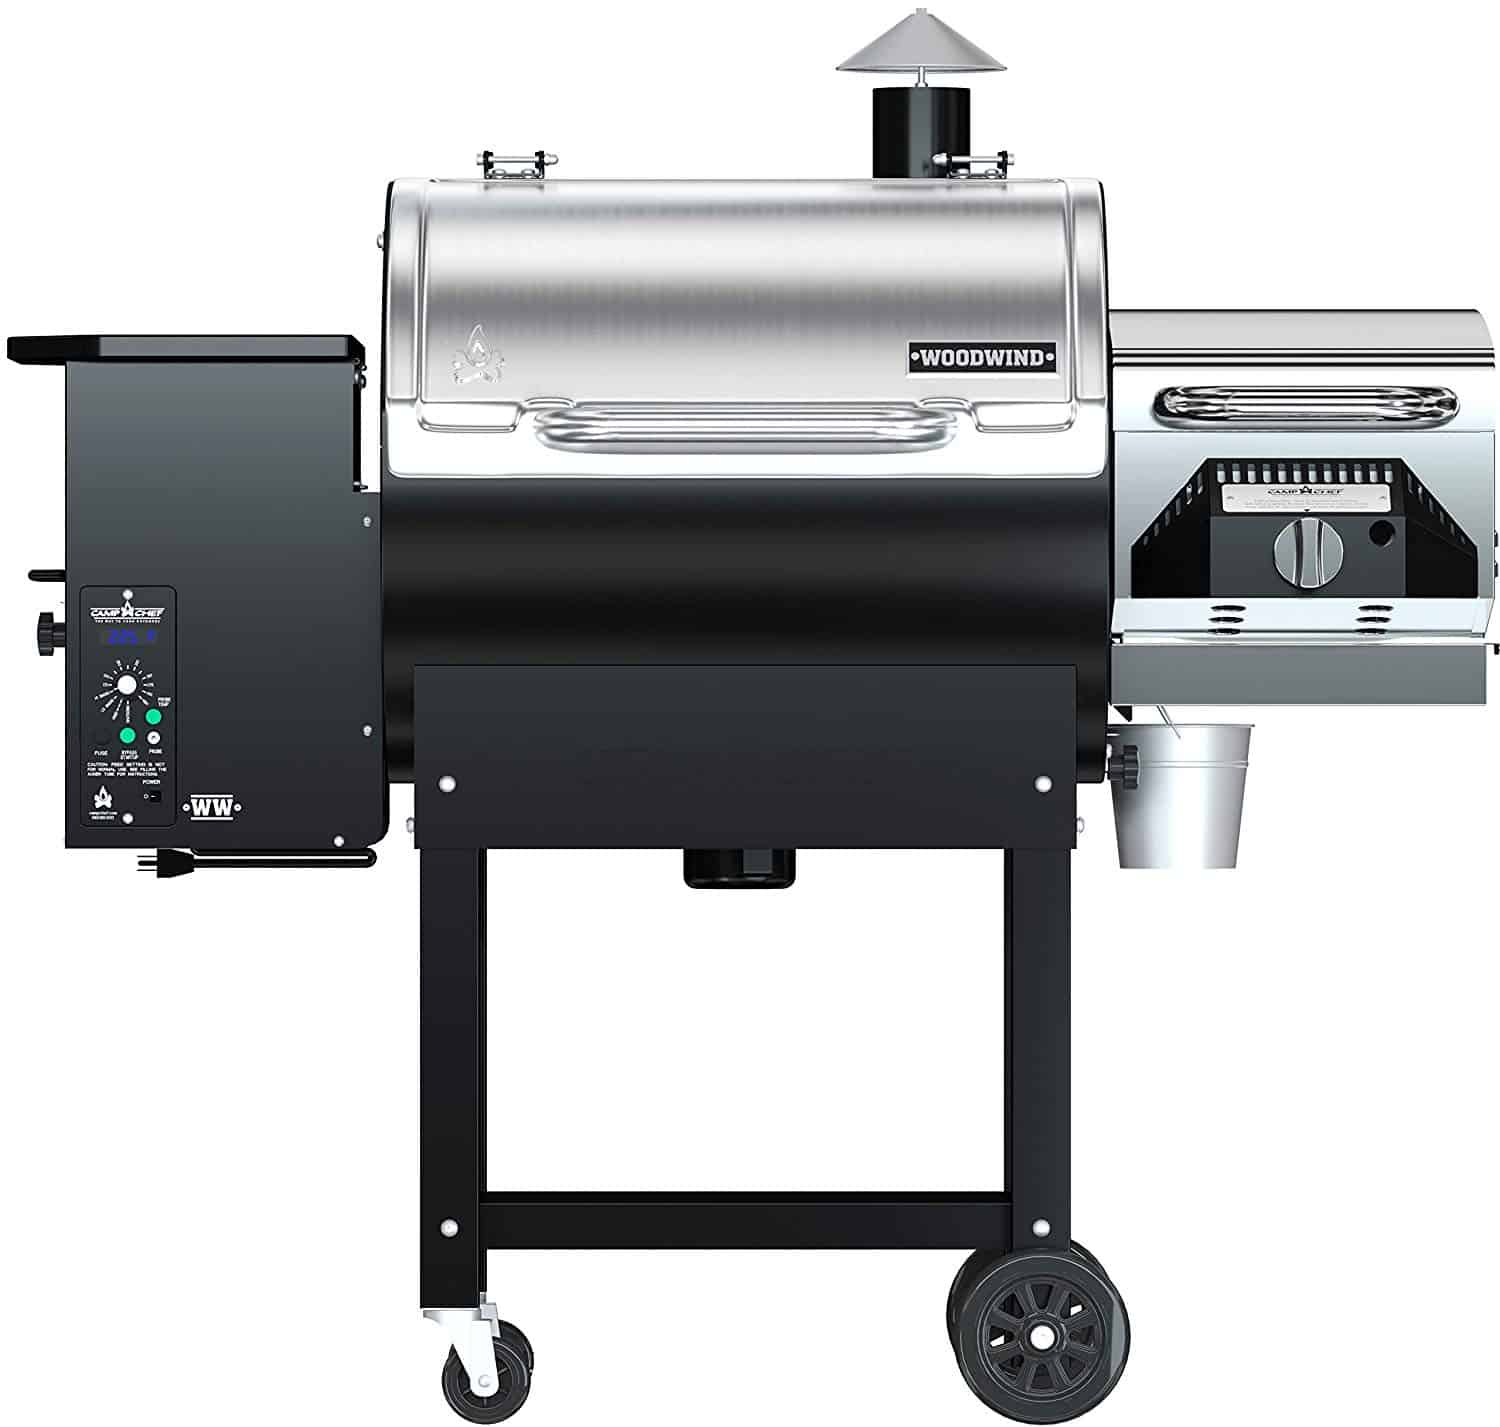 Best commercial wood pellet smoker Camp Chef Woodwind Pellet Grill with Sear Box